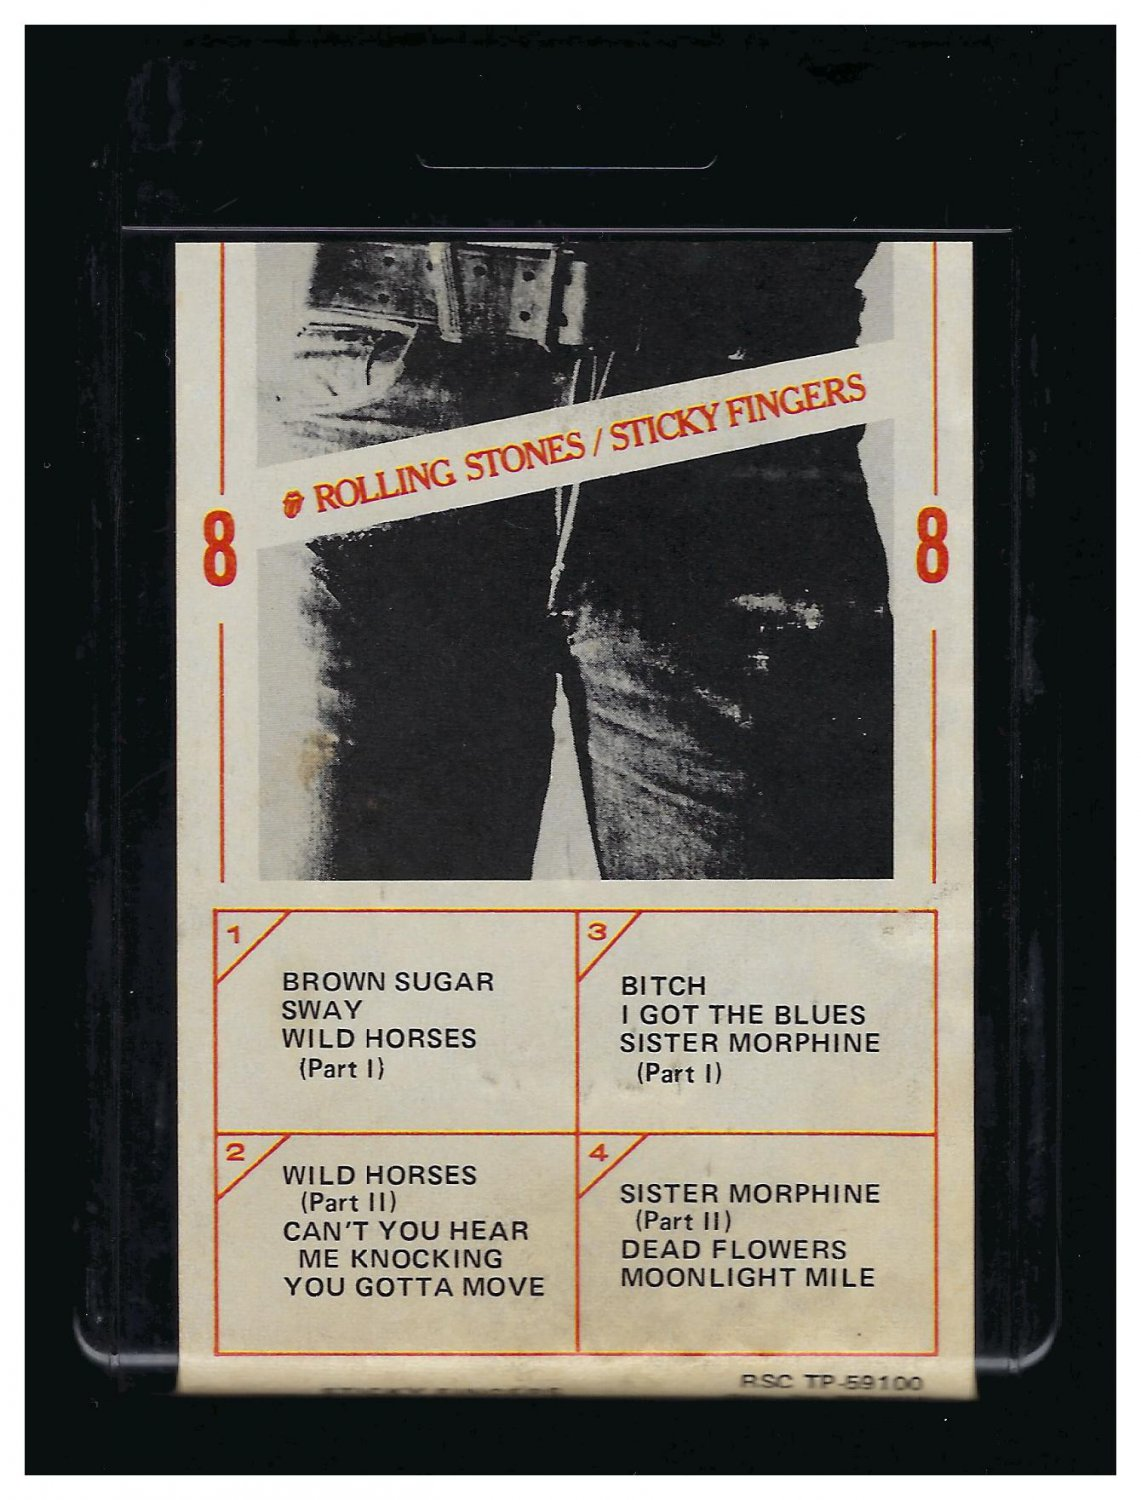 The Rolling Stones - Sticky Fingers 1971 ATLANTIC T4 8-TRACK TAPE